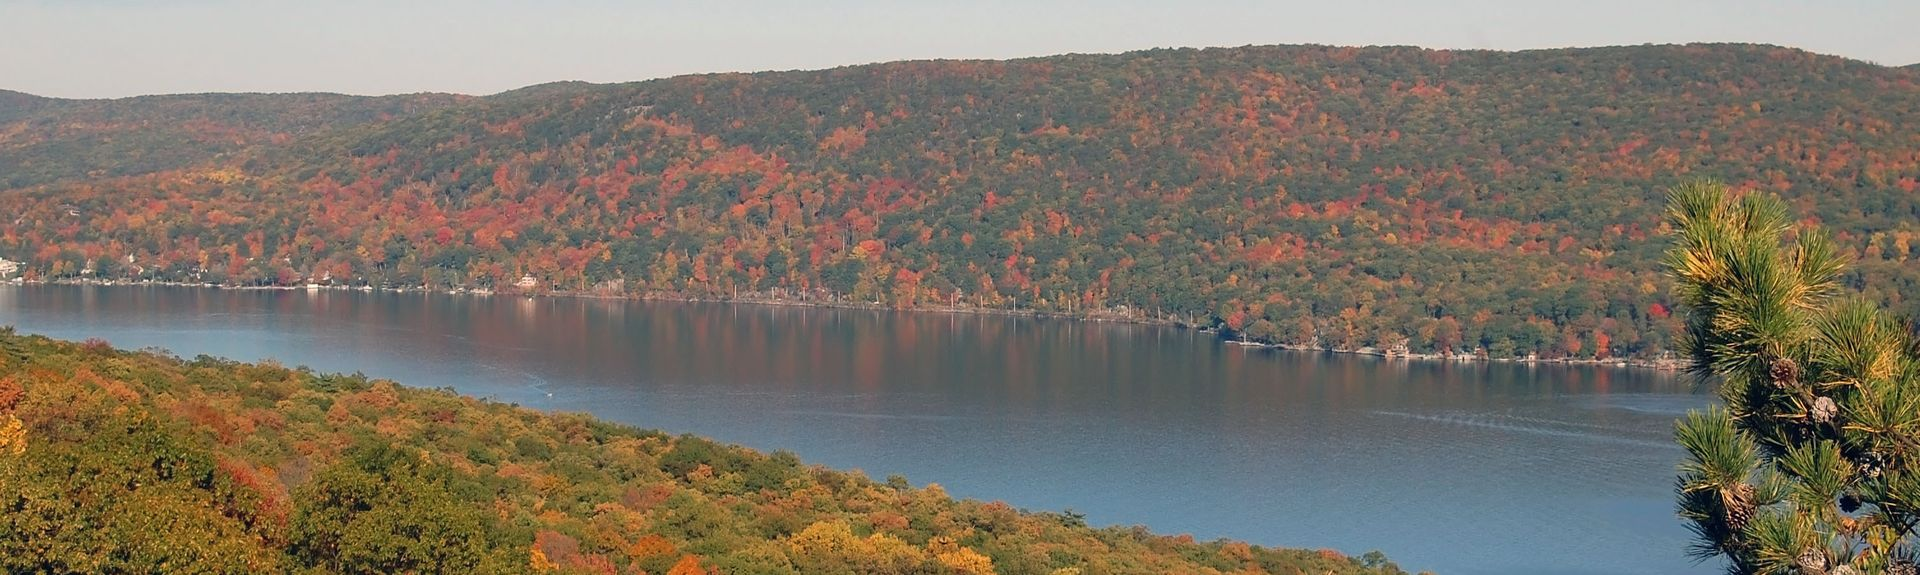 Greenwood Lake, New York, États-Unis d'Amérique